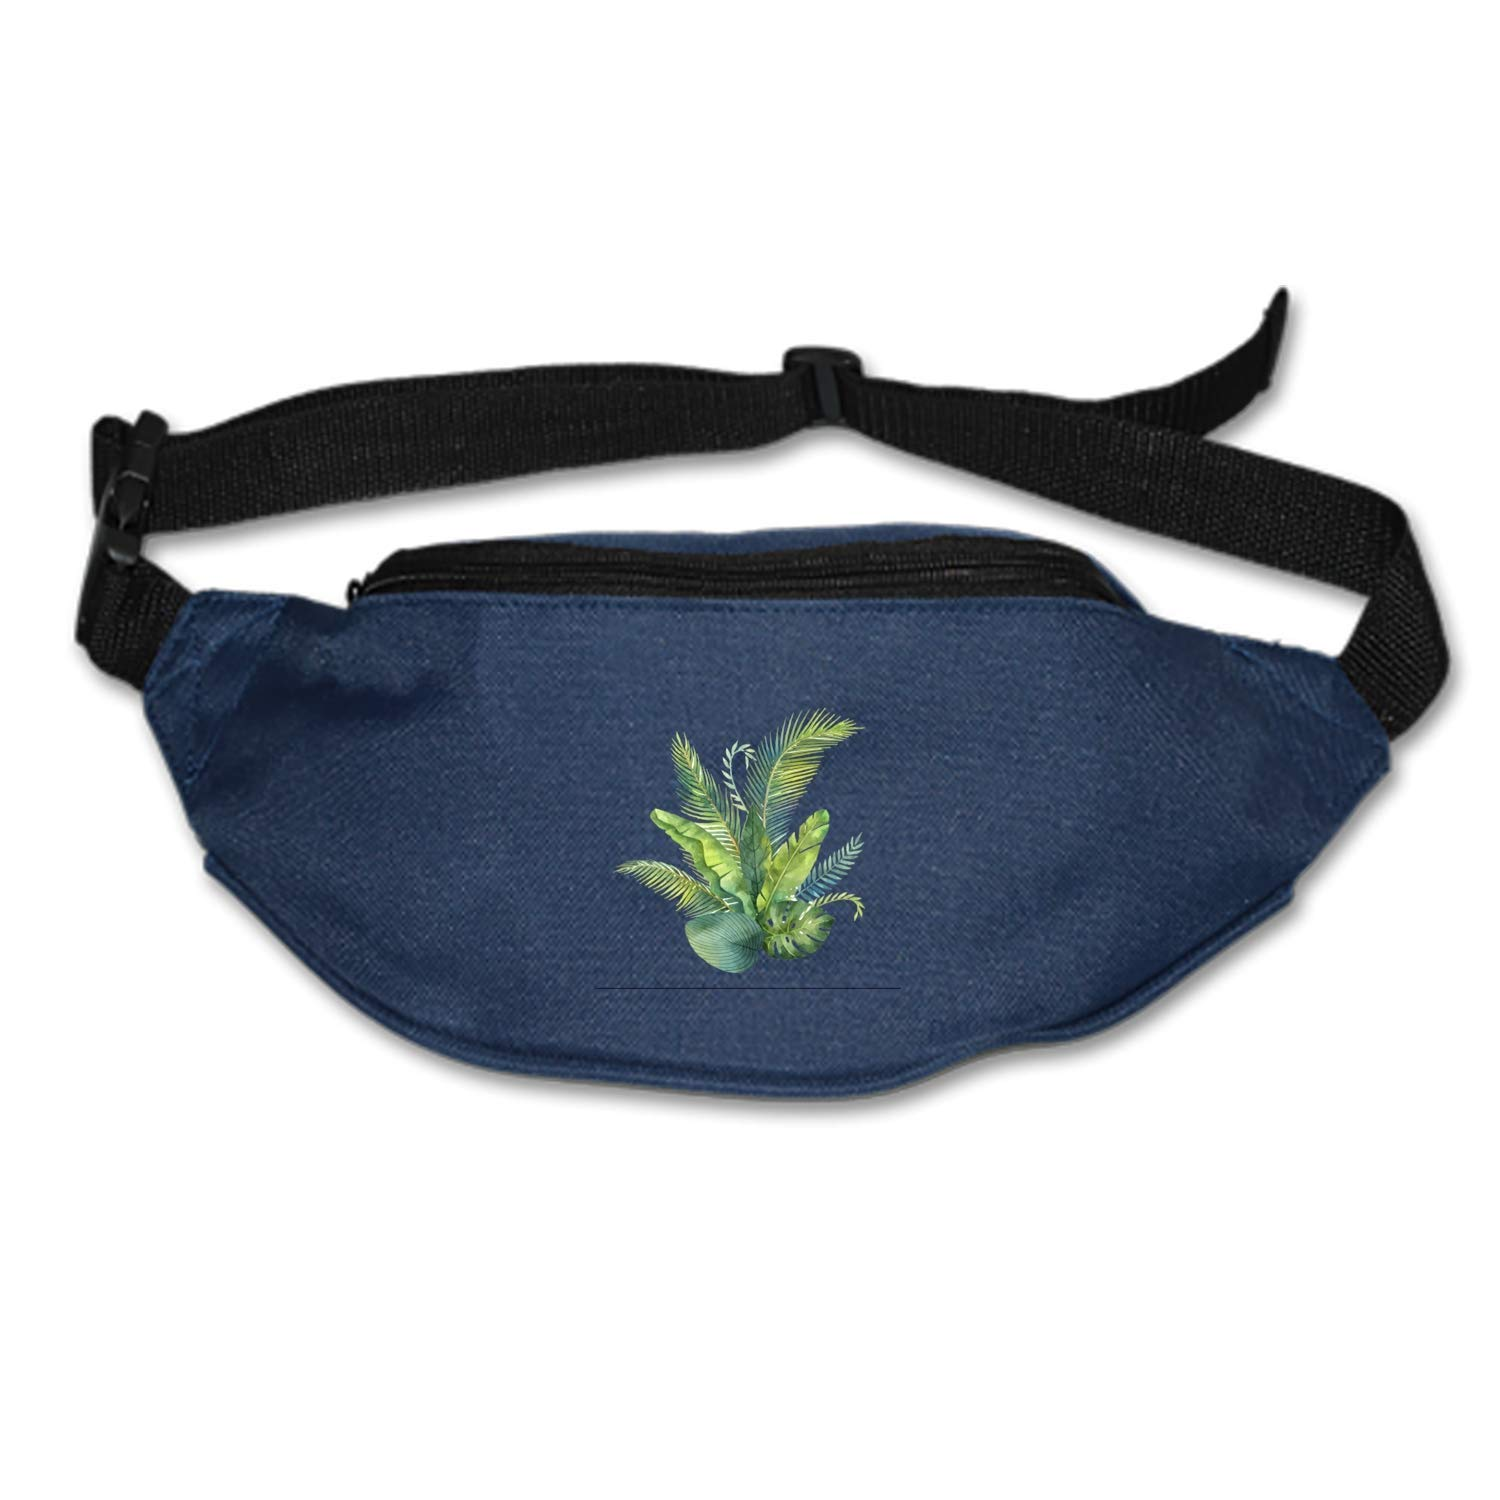 Spanwell Waist Bag Watercolor-bouquet Fanny Pack Stealth Travel bum Bags Running Pocket For Men Women